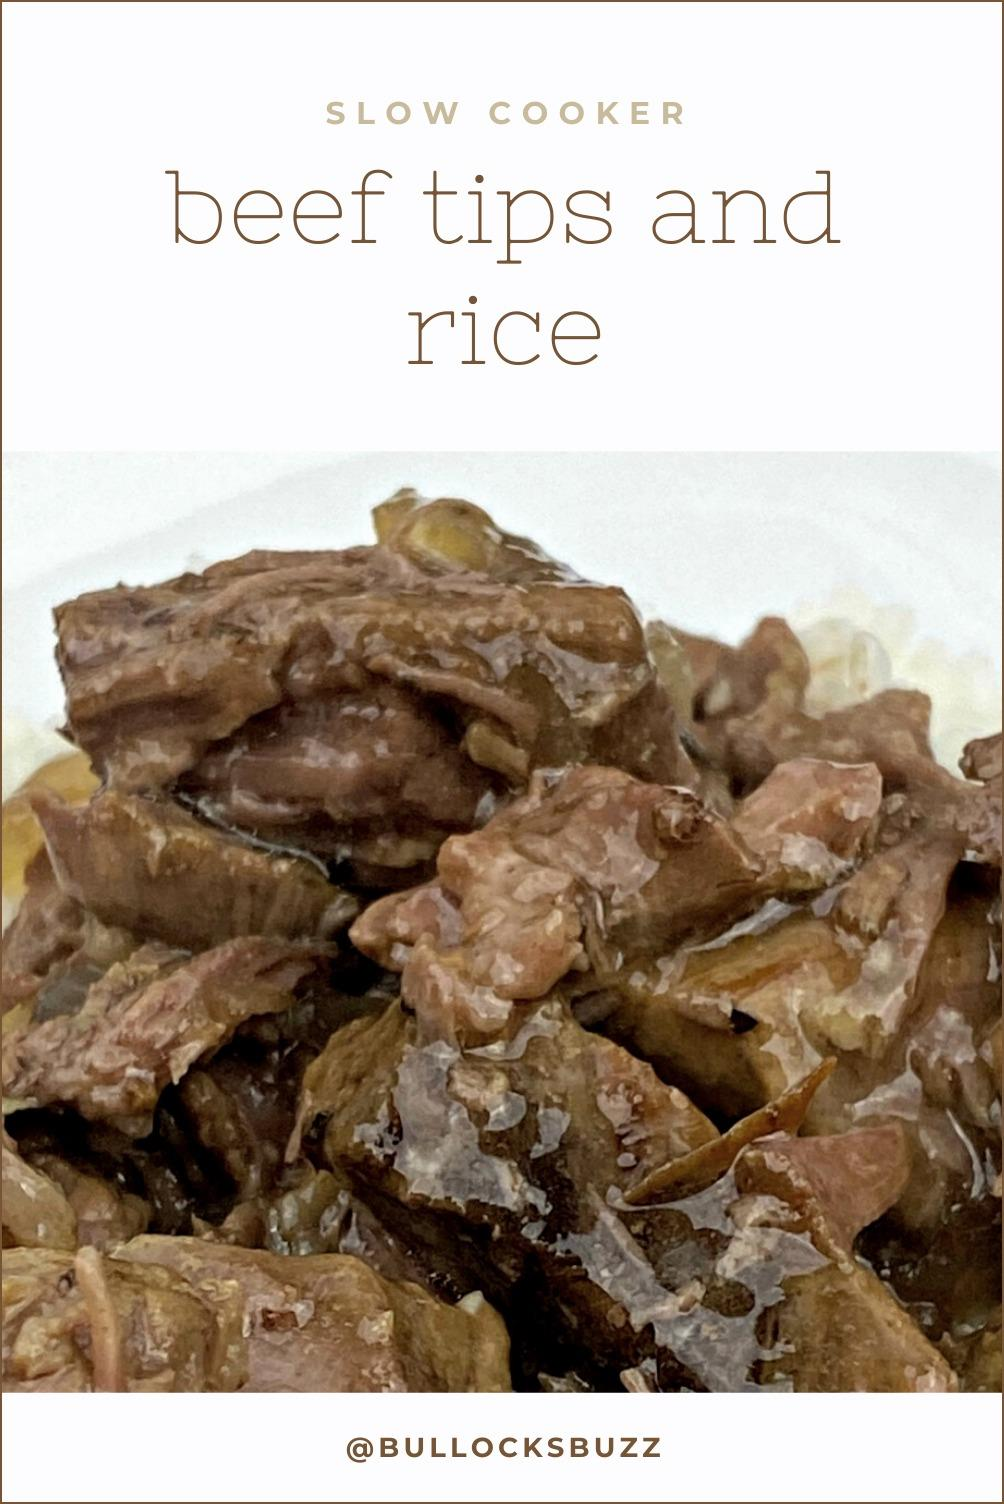 Tender and moist, slow-cooked beef is covered in silky-smooth, delicious gravy and served over a bed of fluffy white rice in this easy Slow Cooker Beef Tips and Rice recipe.